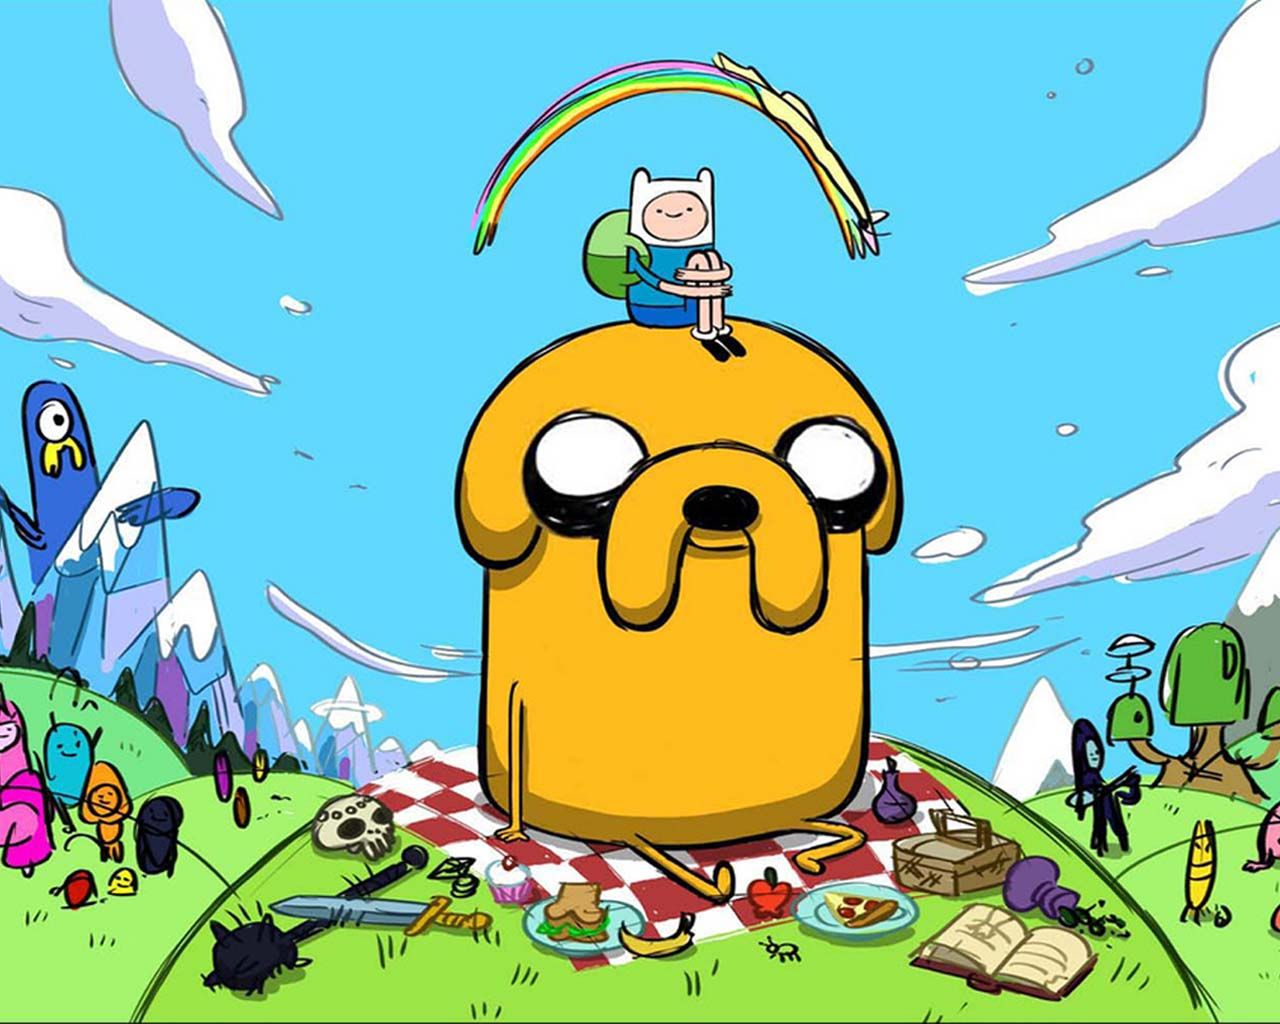 Qu hora es hora de aventura hora de aventura pinterest if you wanna lightly trip out watch adventure time with finn and jake find this pin and more on hora de aventura thecheapjerseys Gallery